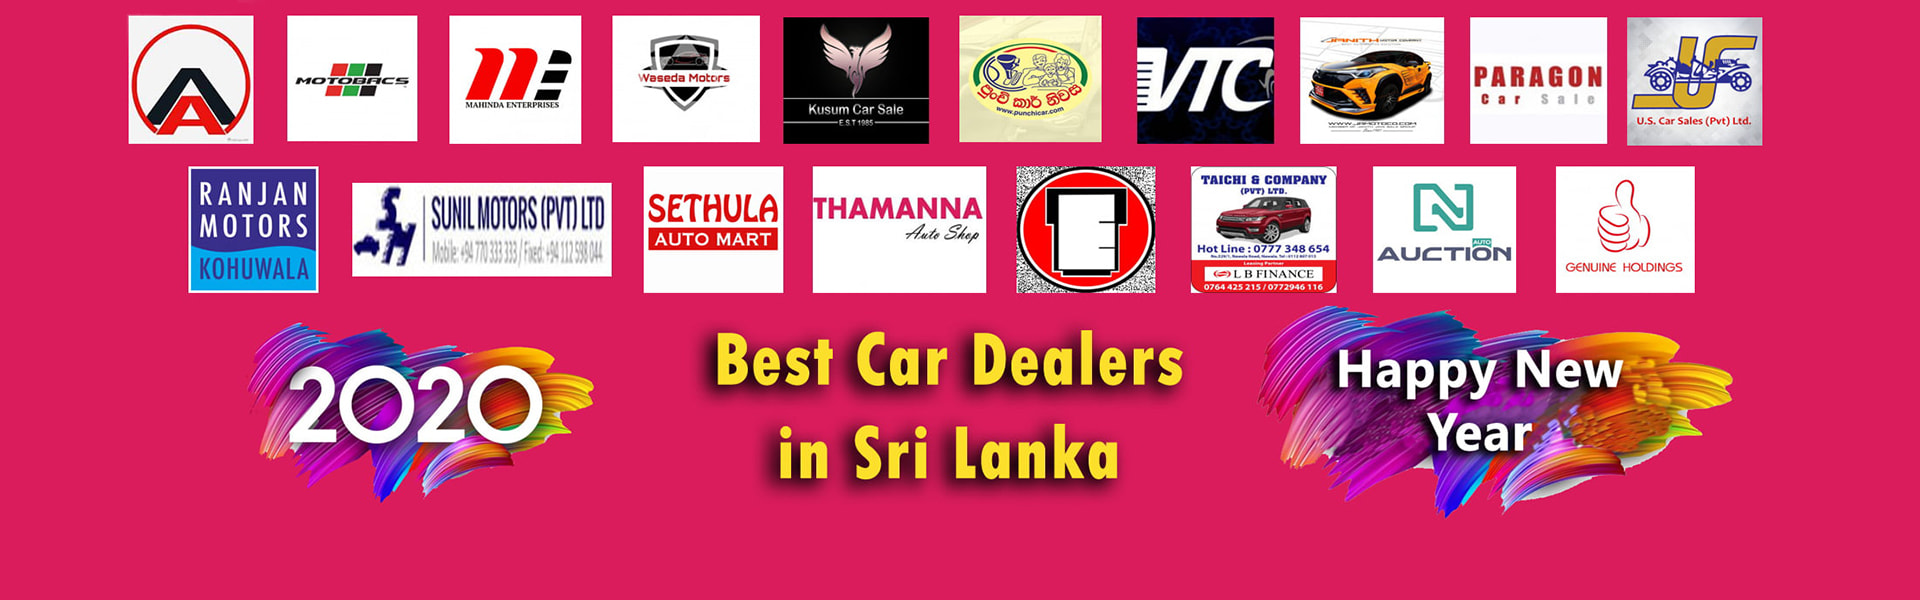 buyosell.lk - Best Car Deals and Dealers in Sri Lanka